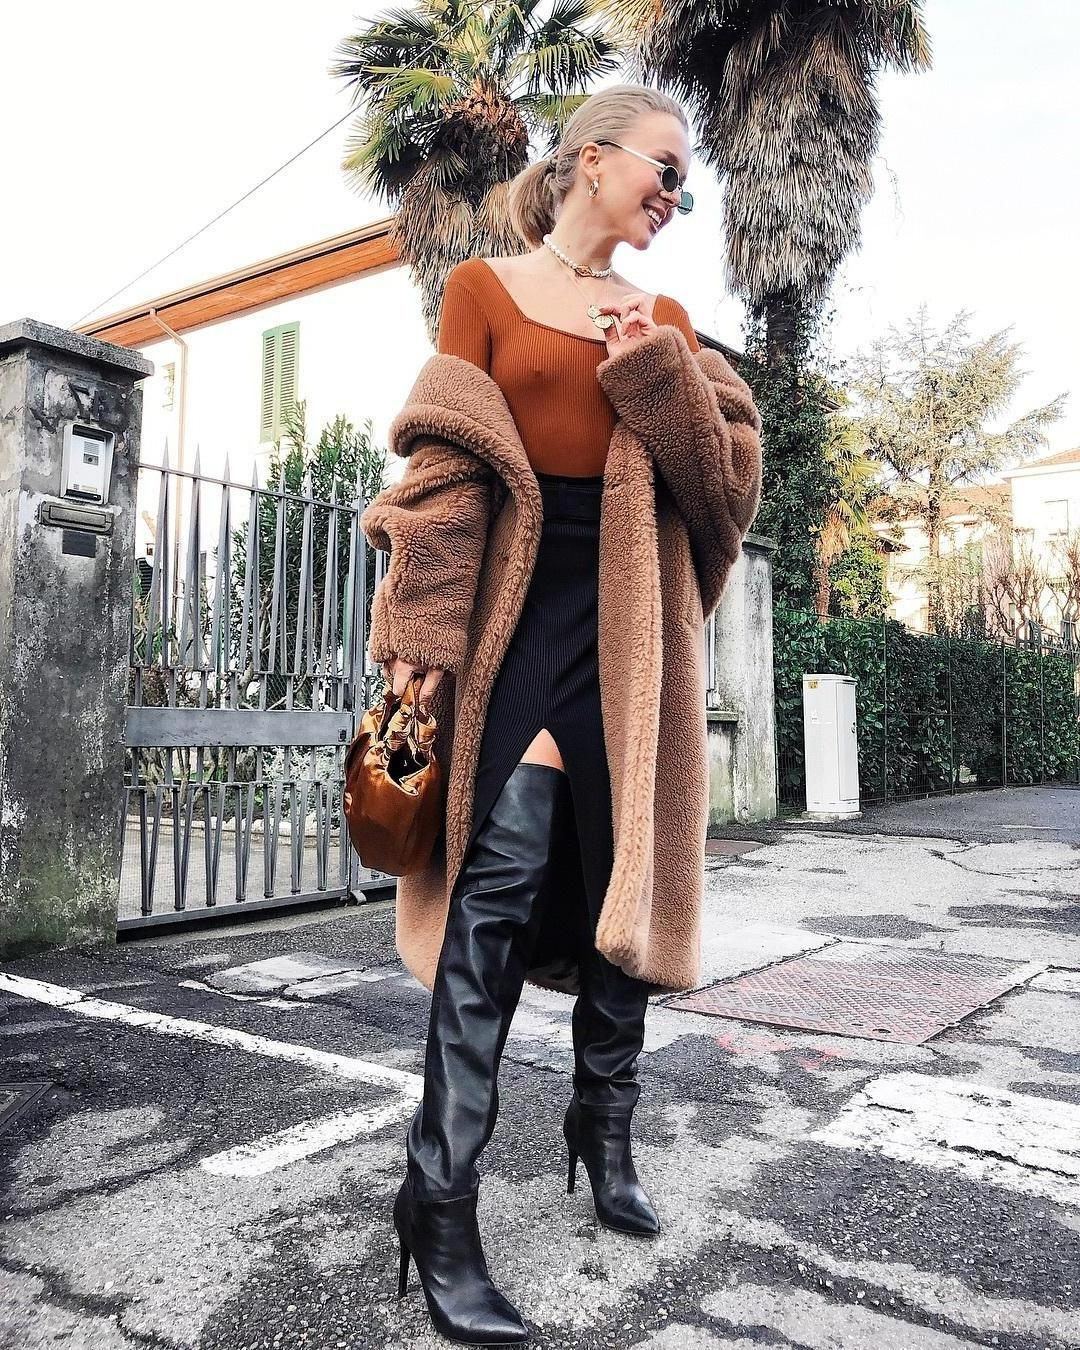 Orange Shoes Black Shoes Knee Boots Heel Boots Black Boots Teddy Bear Coat Ma Mara Oversized Coat Handbag Brown Bag Midi Skirt Black Skirt Slit Skirt  Underwear Orange Sheer Tight Bodysuit Nipples T cover image